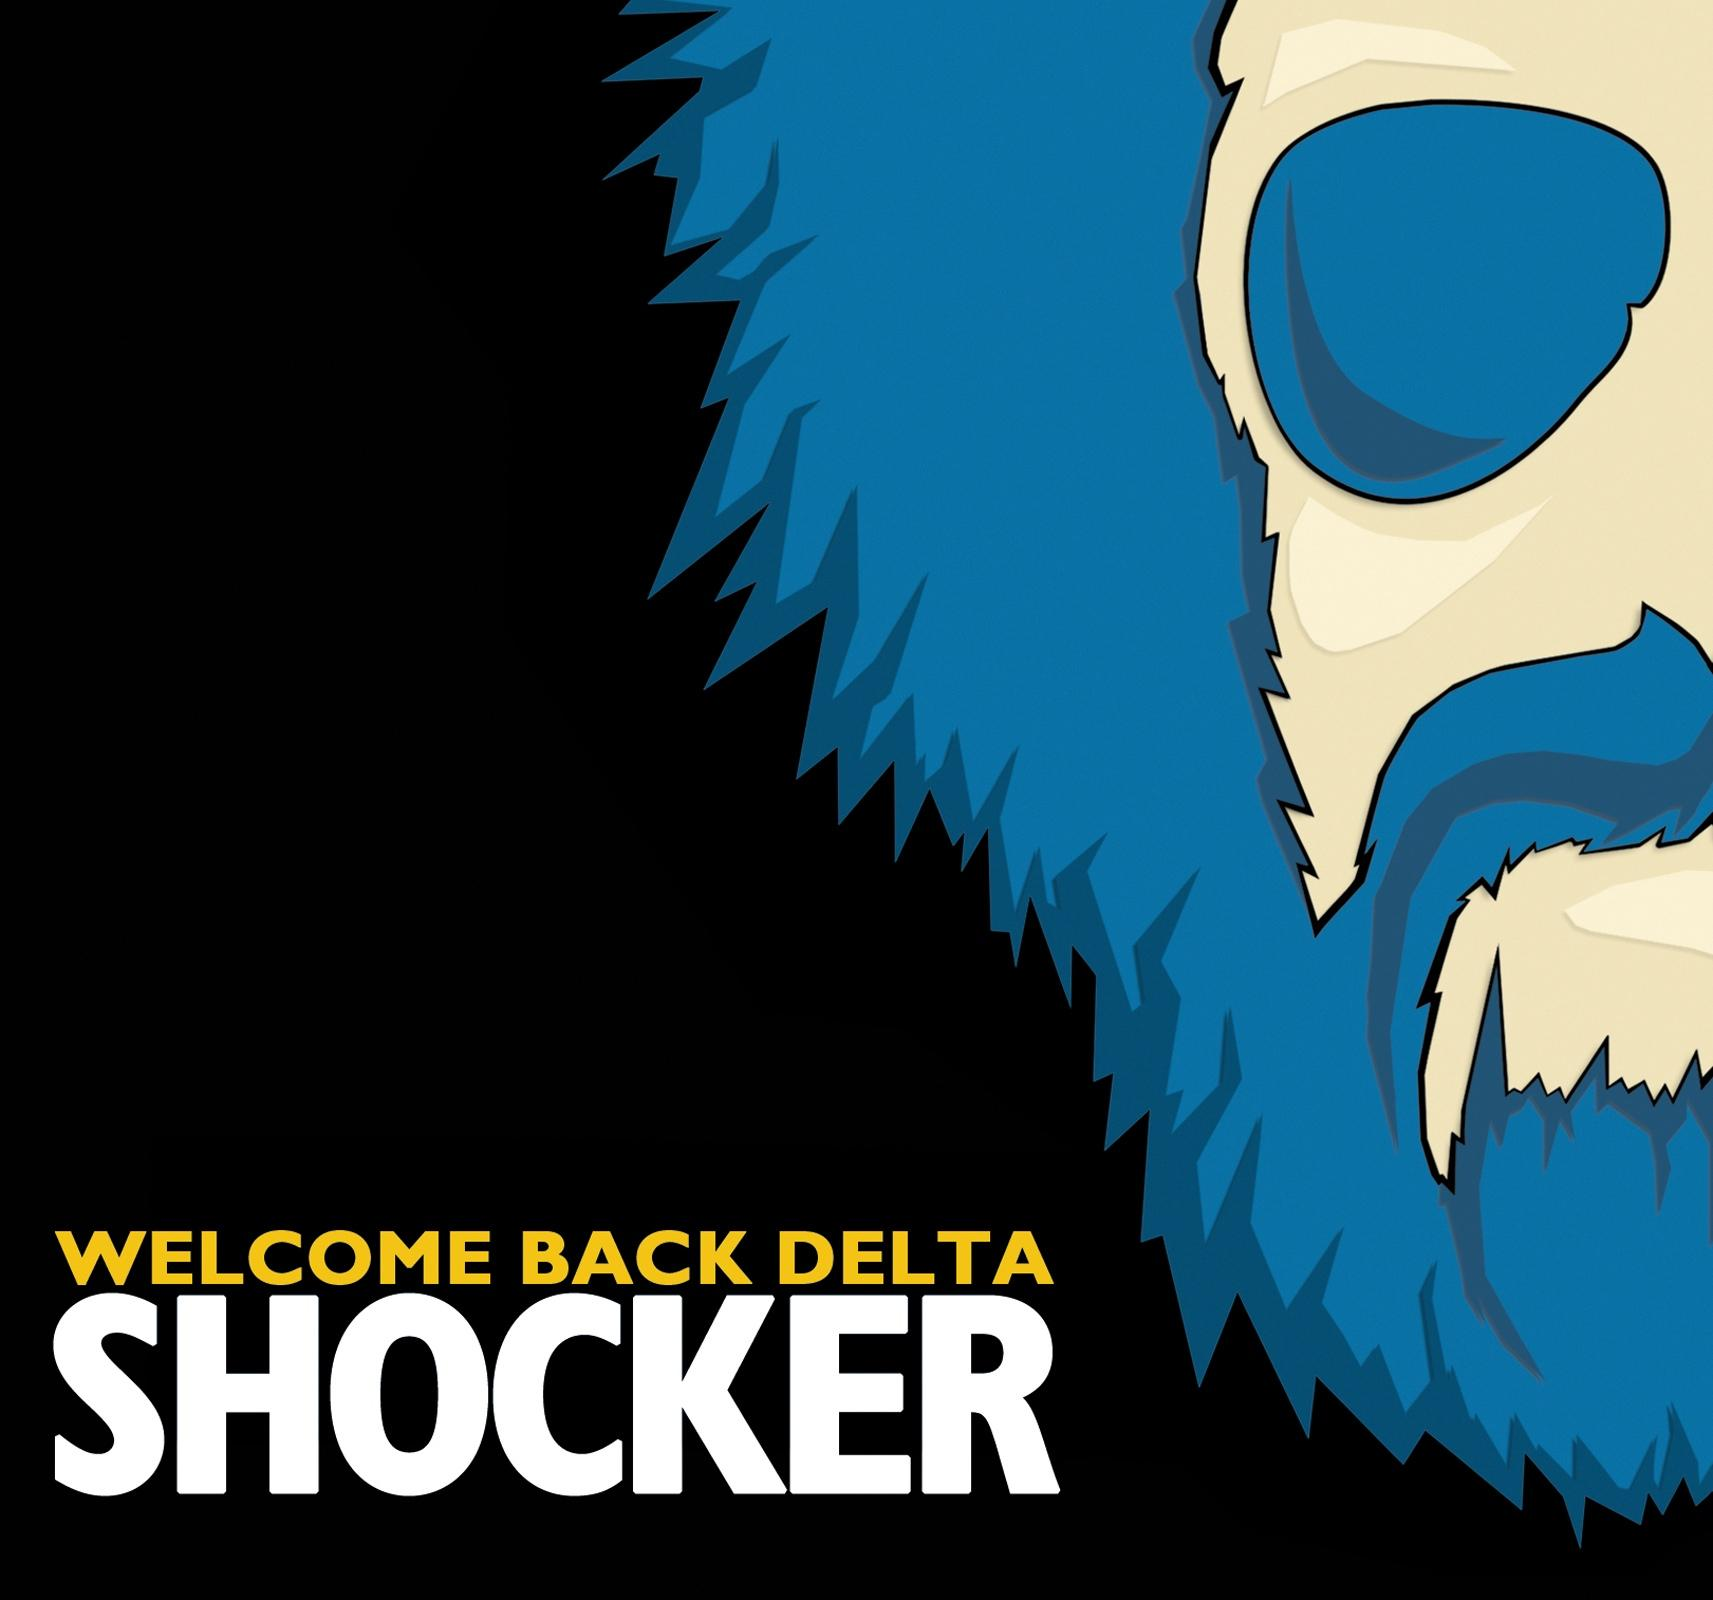 'Shocker' is Welcome Back Delta's new album, but it might not suit everyone's tastes. Credit: Welcome Back Delta/The Foothill Dragon Press